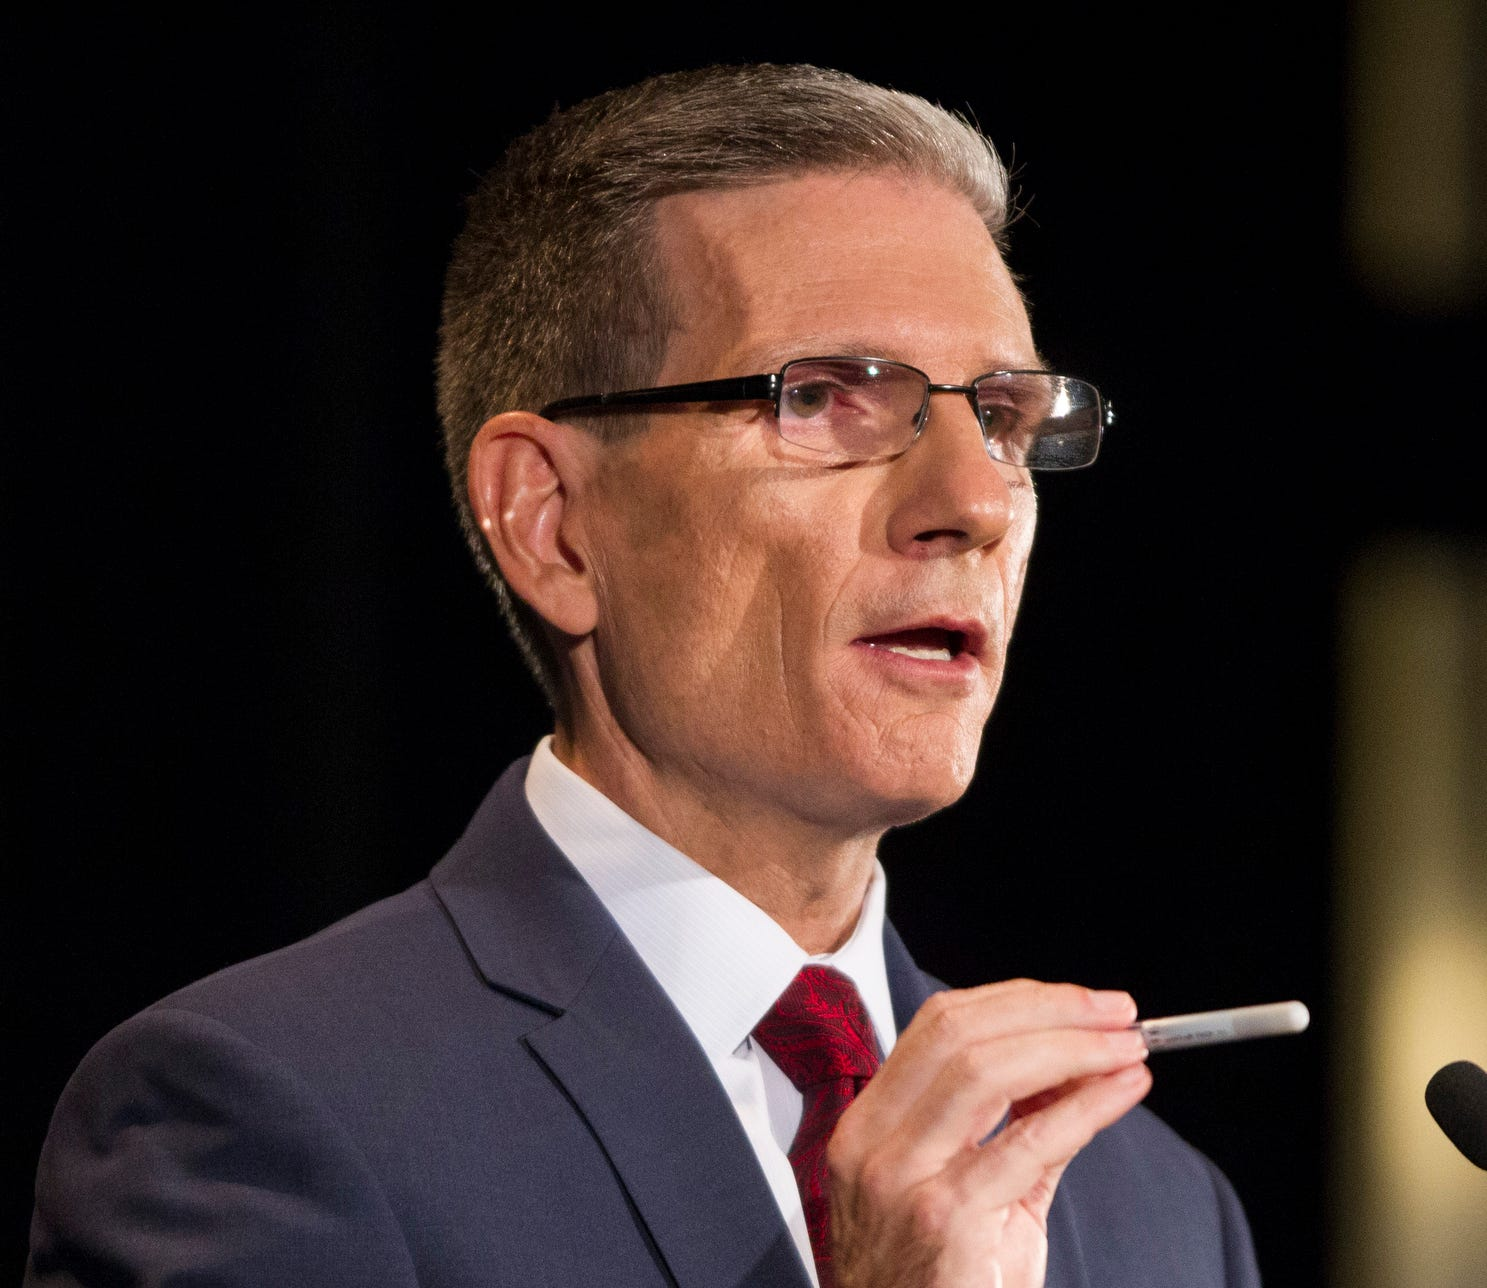 Former U.S. Rep. Joe Heck, R-Nev., now the chairman of the National Commission on Military, National, and Public Service, during his 2016 senate campaign.